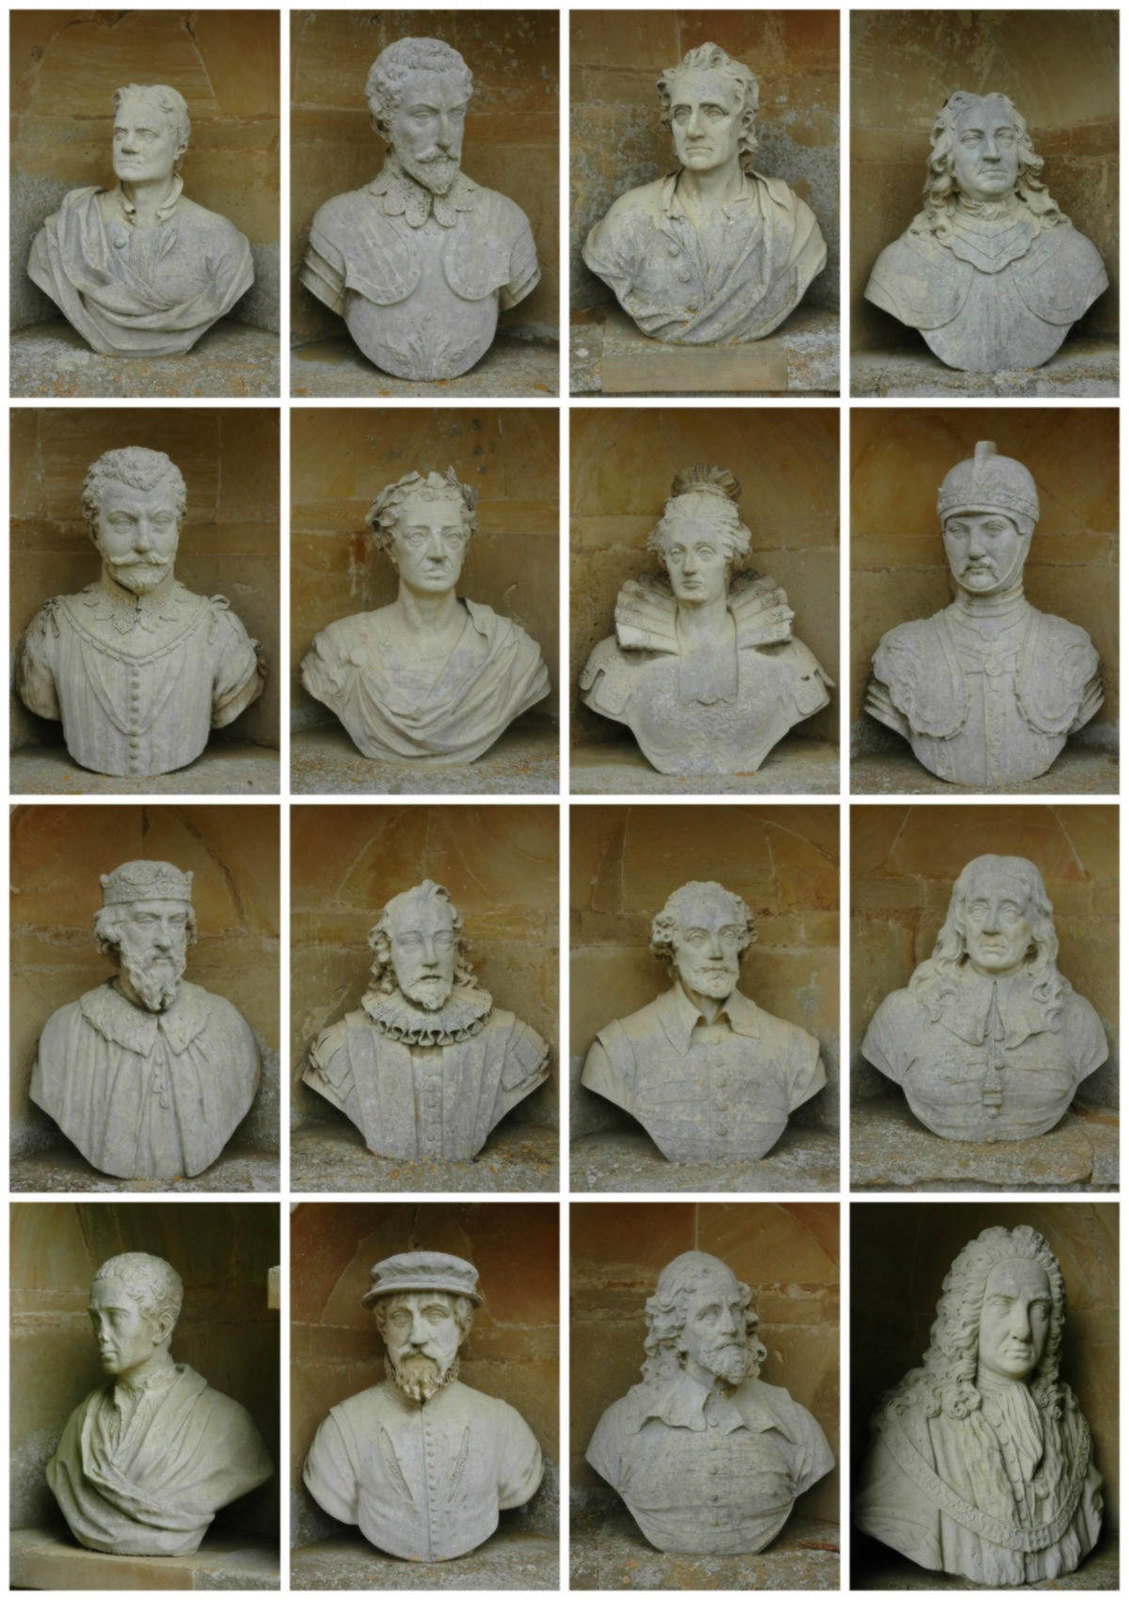 The British Worthies top row: Sir Isaac Newton, Sir Walter Raleigh, John Locke, John Hampden; 2nd row: Sir Francis Drake, King William III, Queen Elizabeth I, The Black Prince; 3rd row: King Alfred, Sir Francis Bacon, William Shakespeare, John Milton; 4th row: Alexander Pope, Sir Thomas Gresham, Inigo Jones, Sir John Barnard